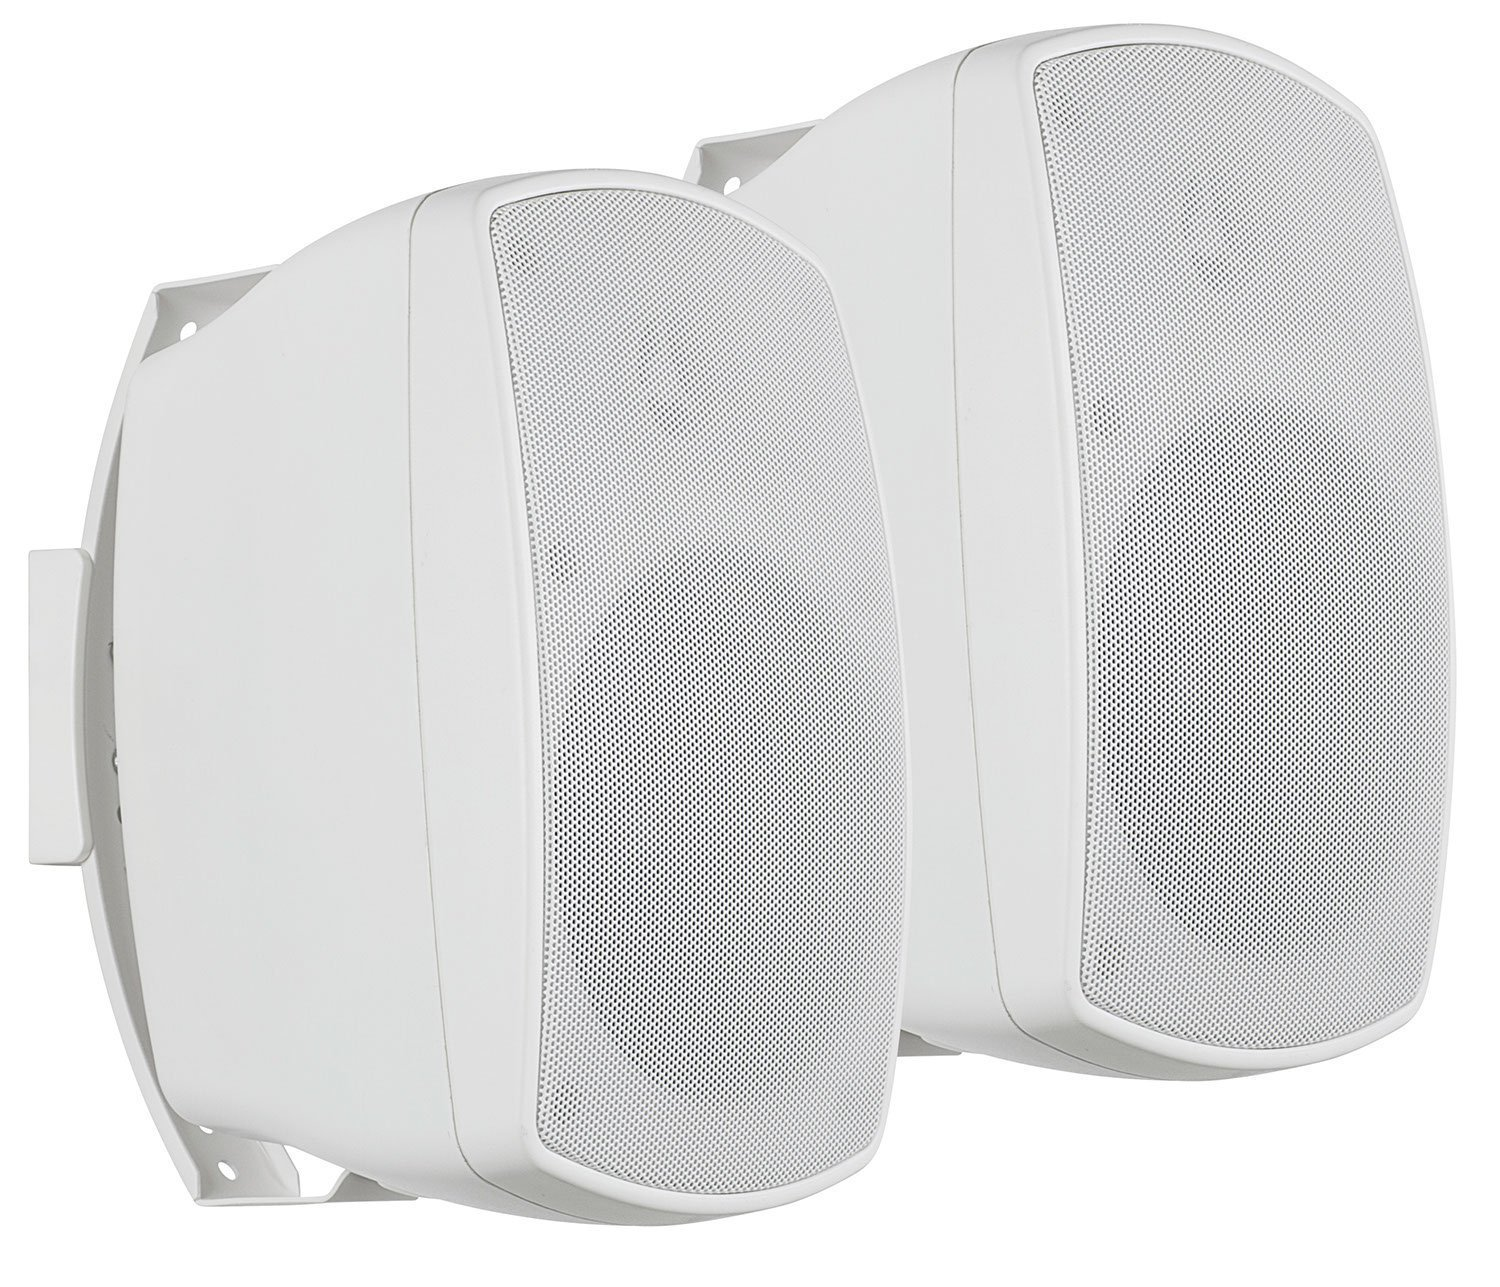 Turcom Indoor Outdoor Wall Mounted Speakers, Dual 2 Way Home Speaker Set With Adjustable Mounts, (1 Pair, White) by Turcom